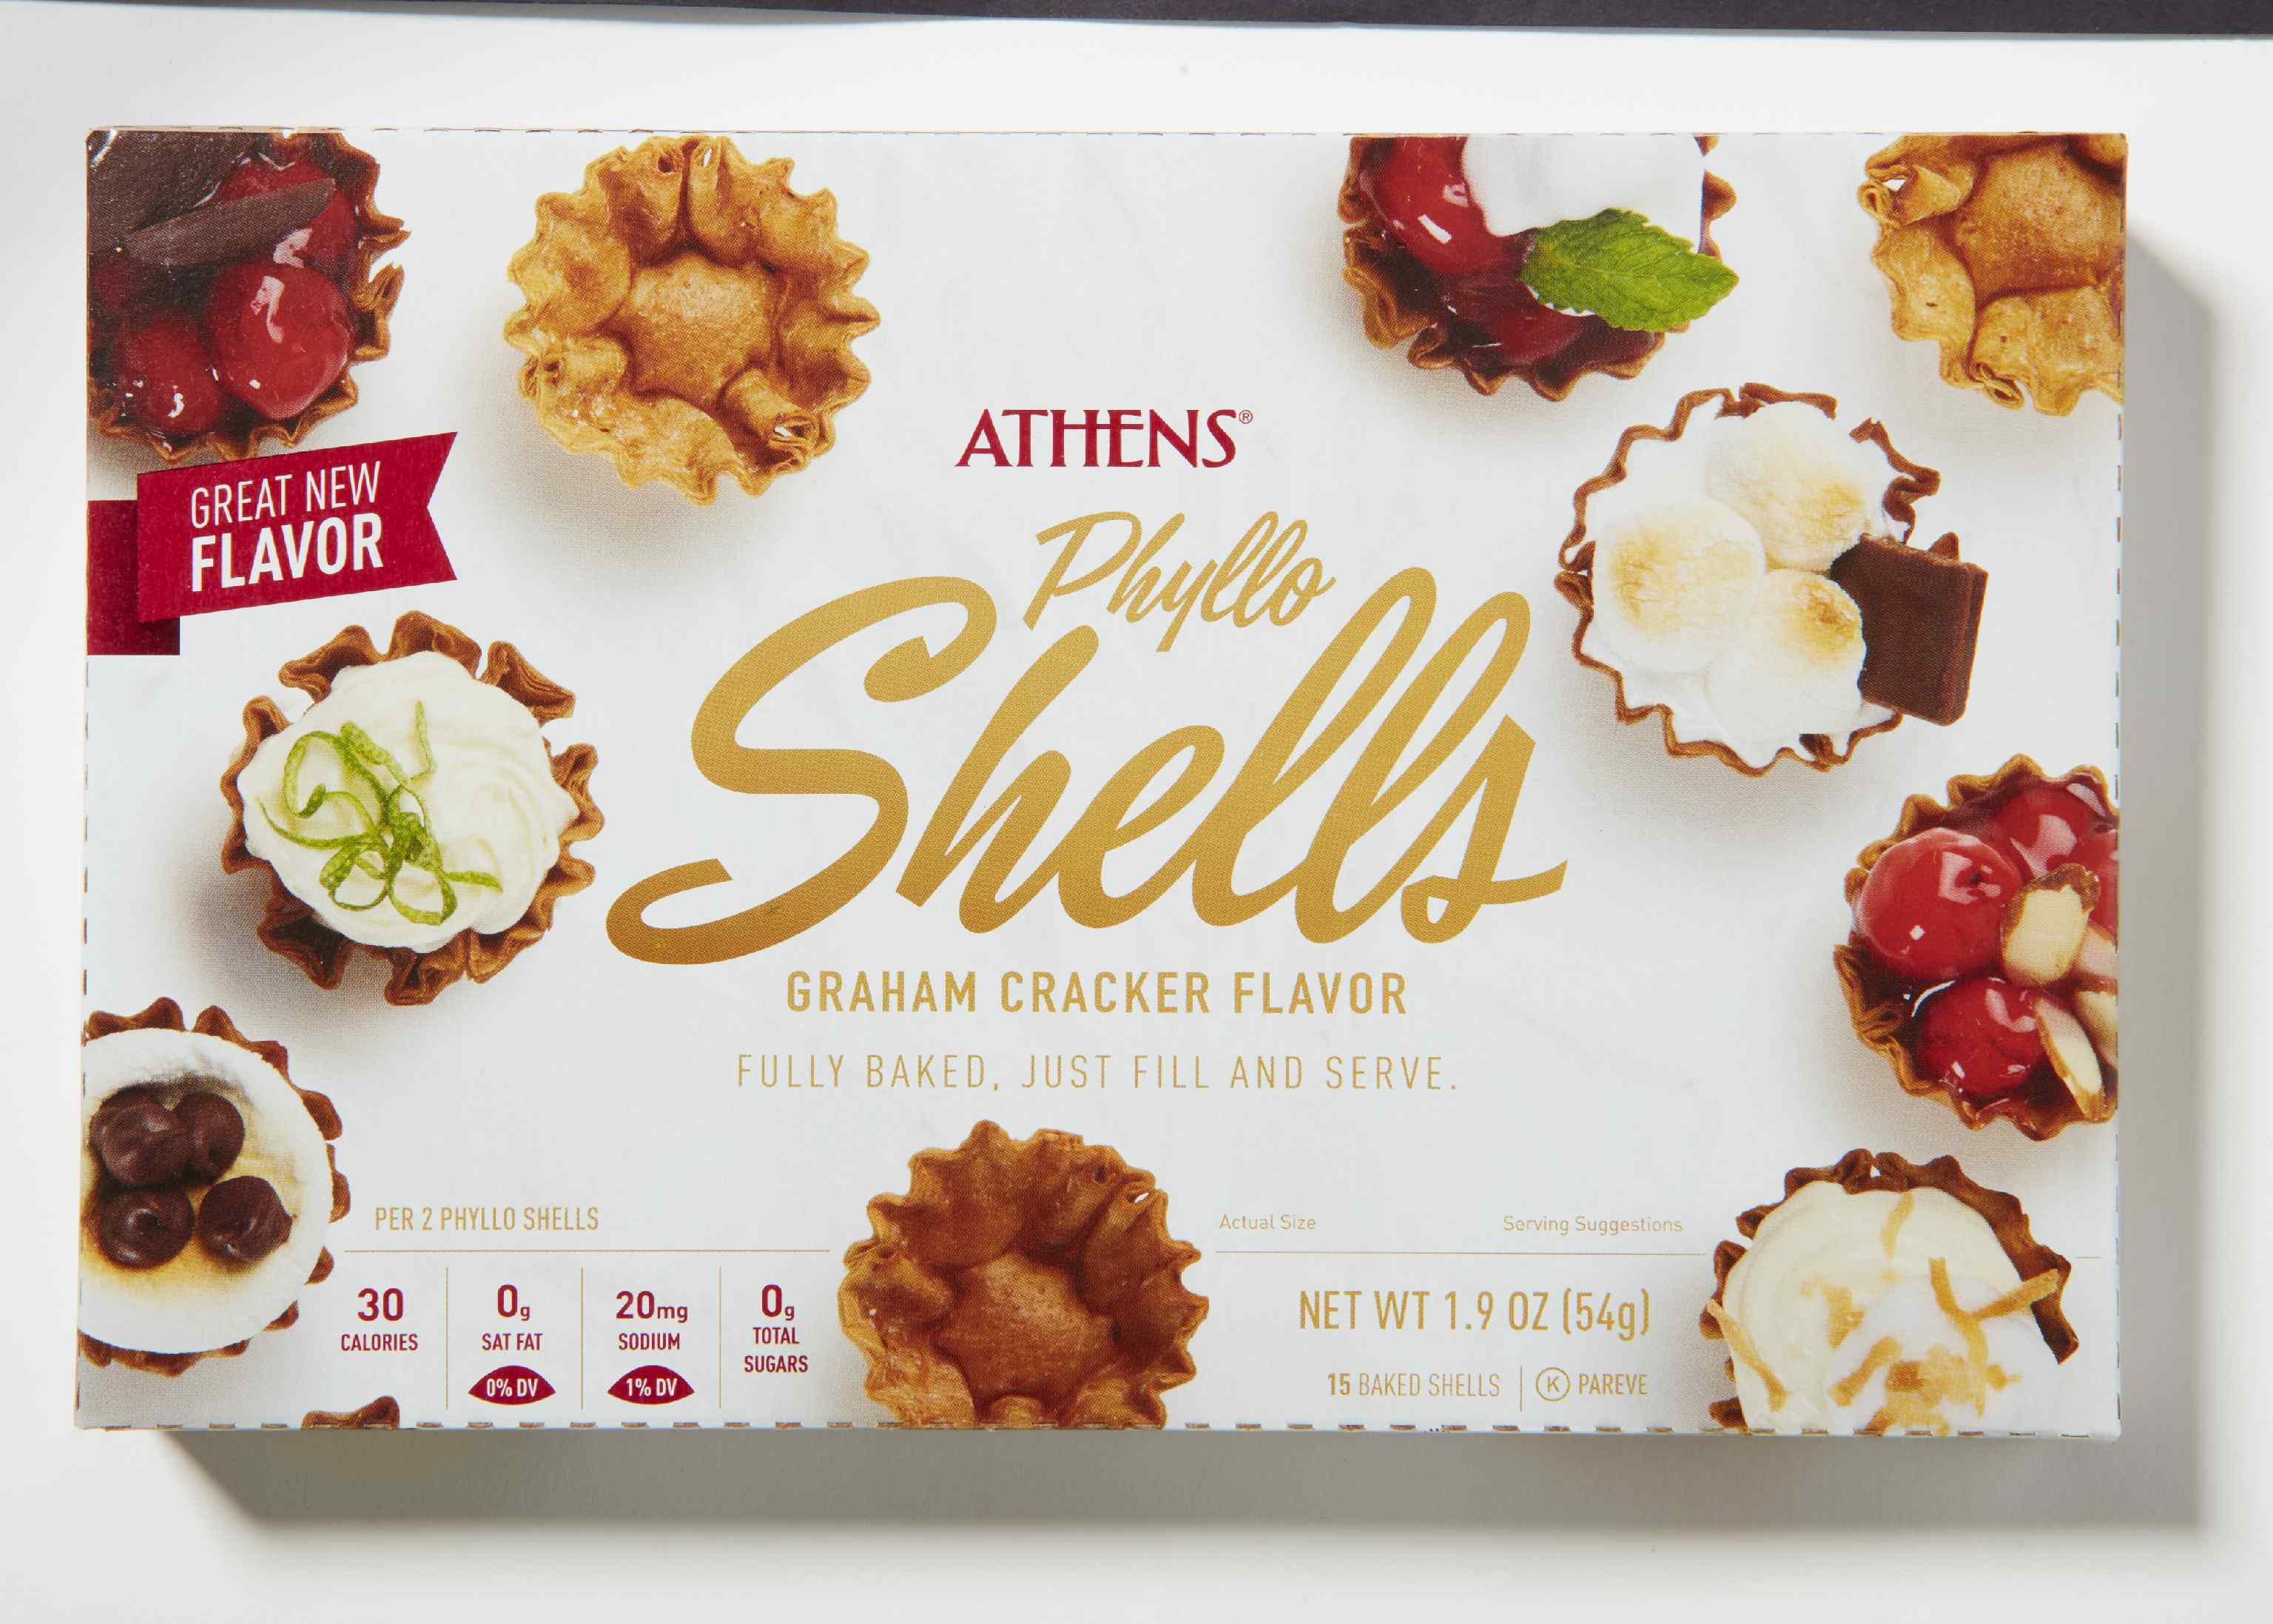 Athens Phyllo Shell